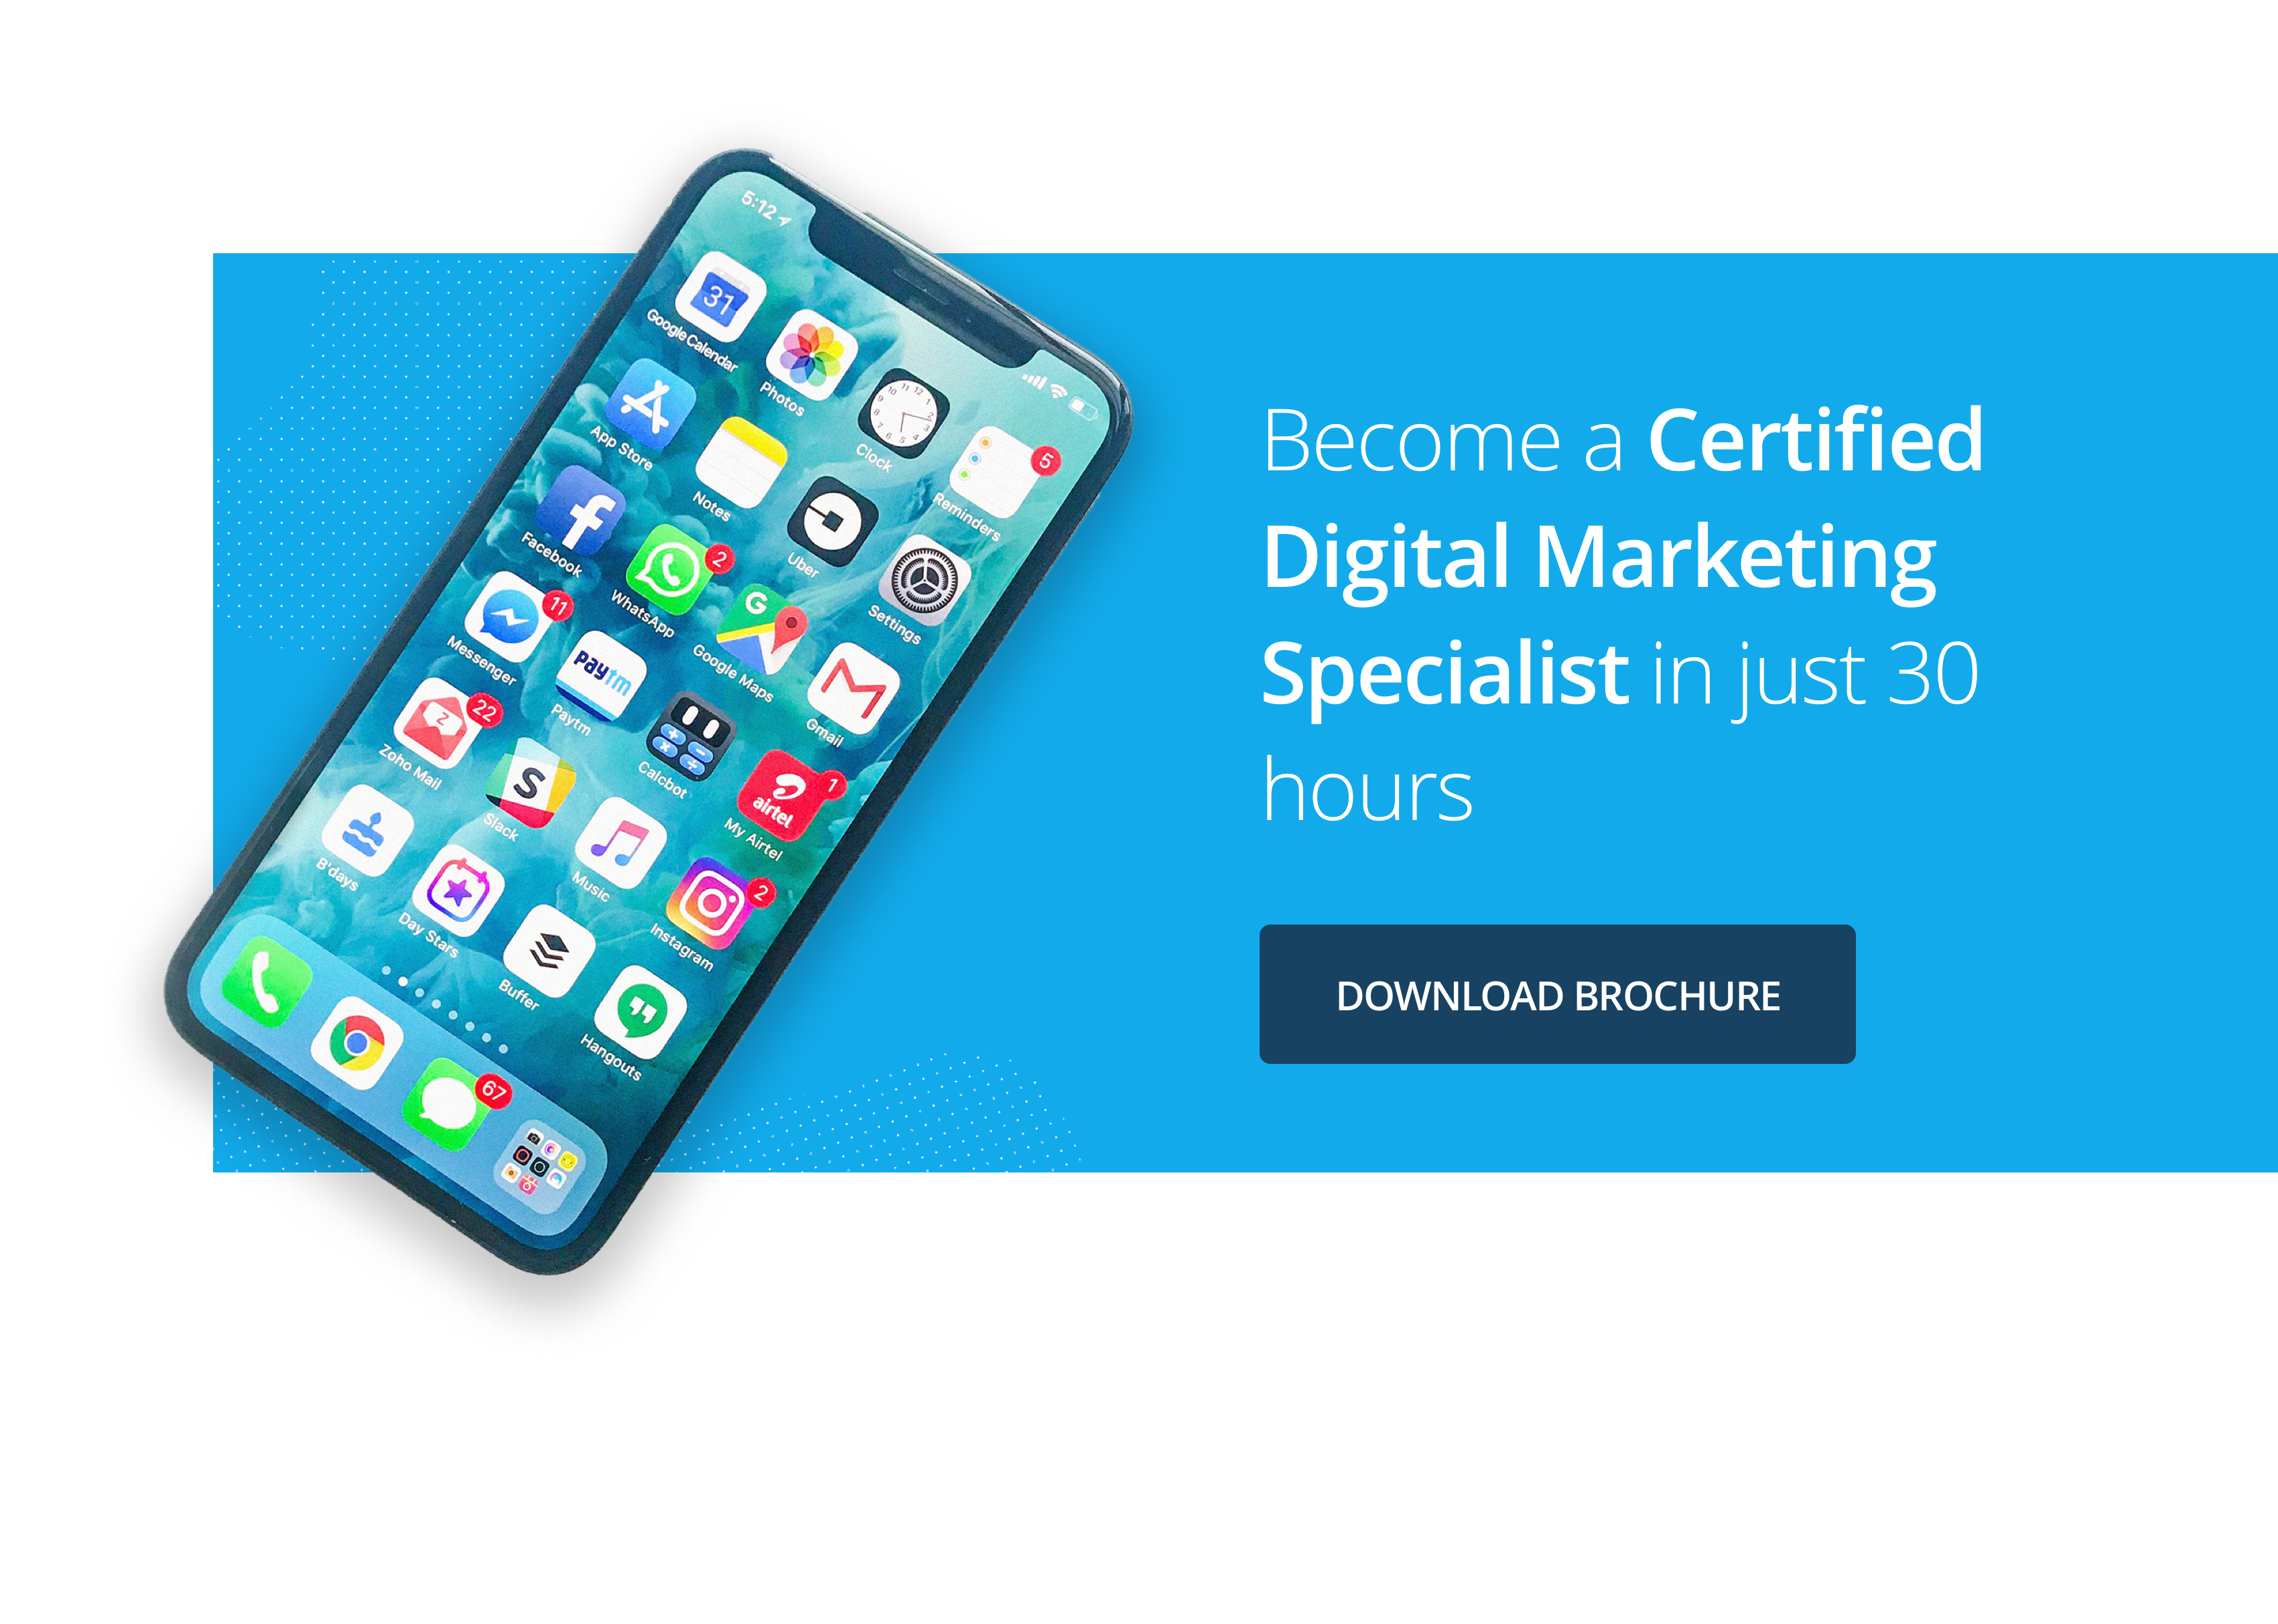 Become a Certified Digital Marketing Specialist